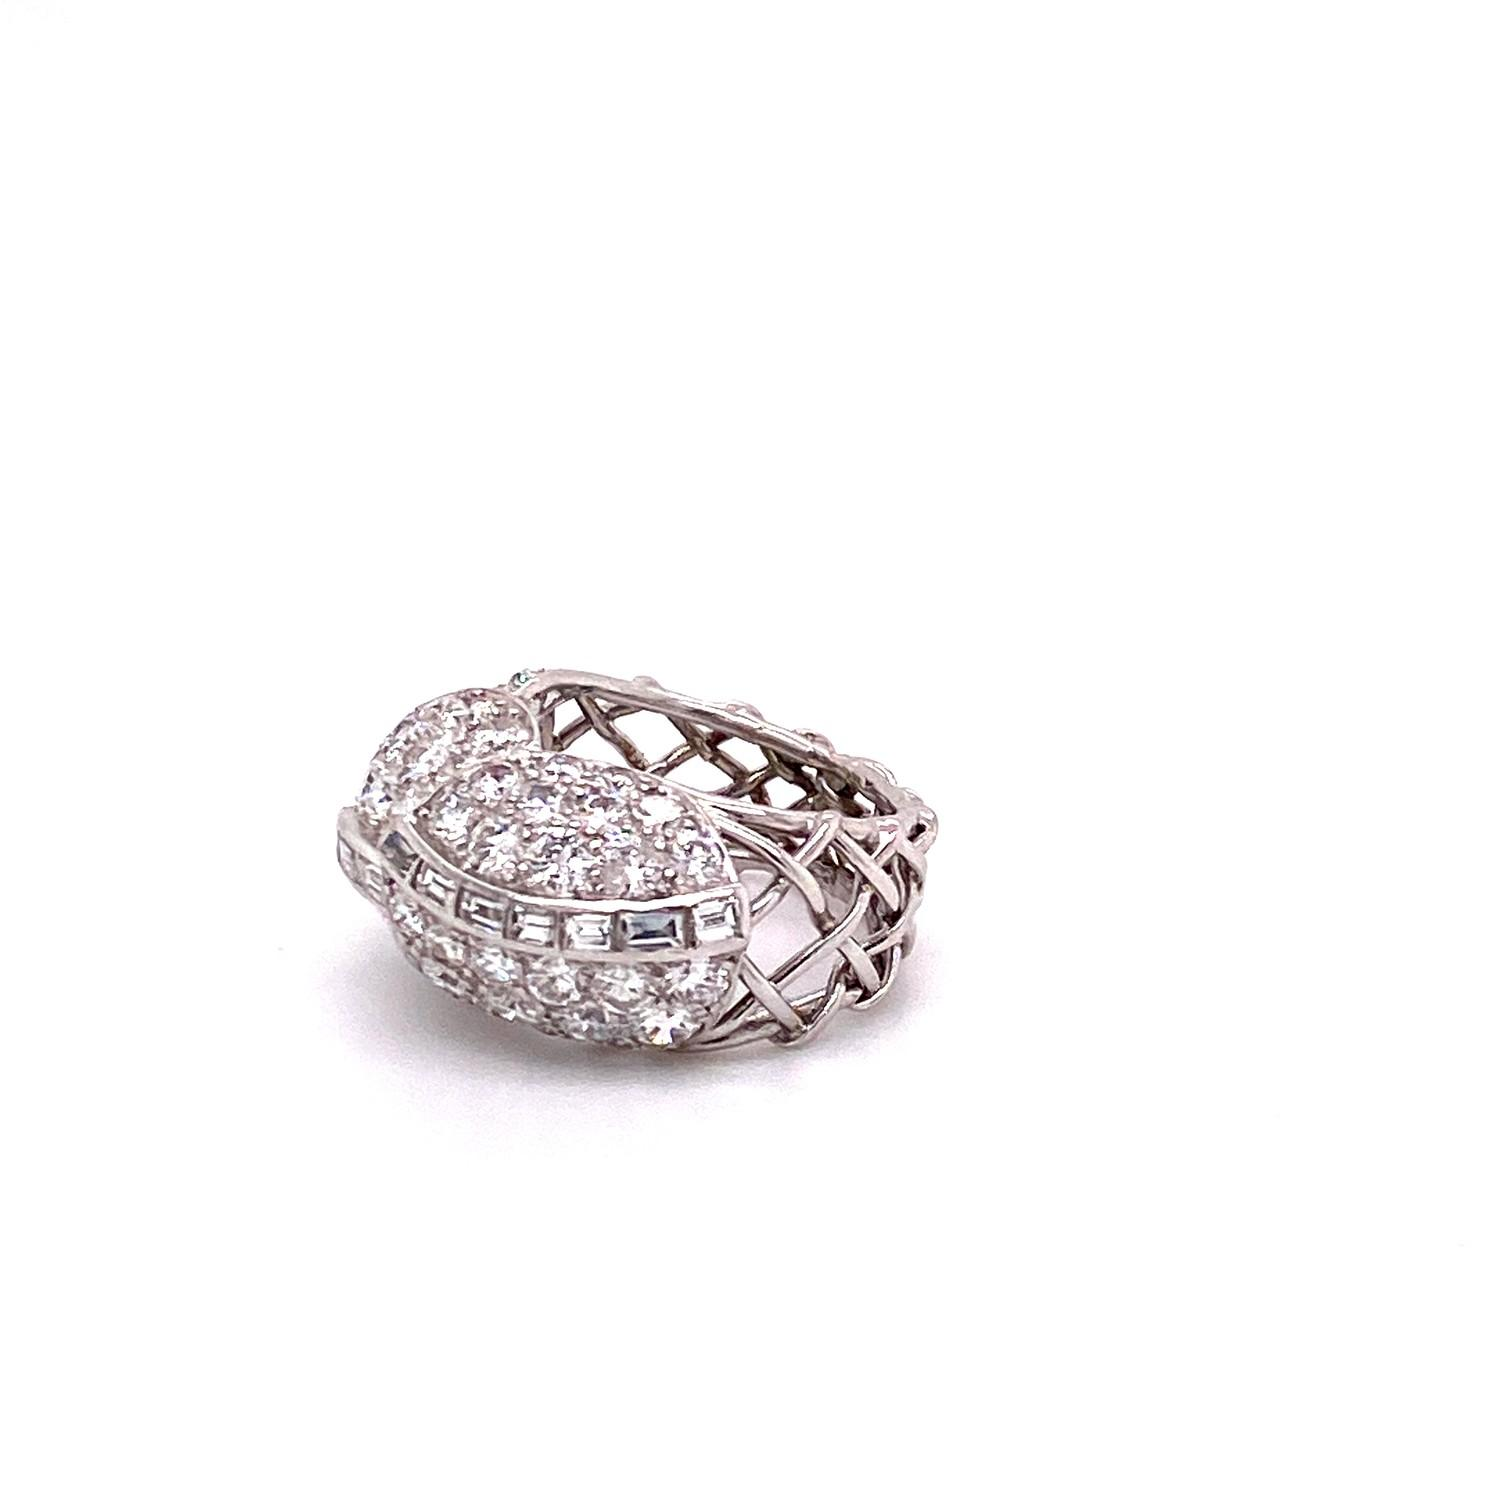 A 1950's Cartier Cocktail Ring, Cartier baguette and brilliant cut pave set dome top bombe ring - Image 6 of 9